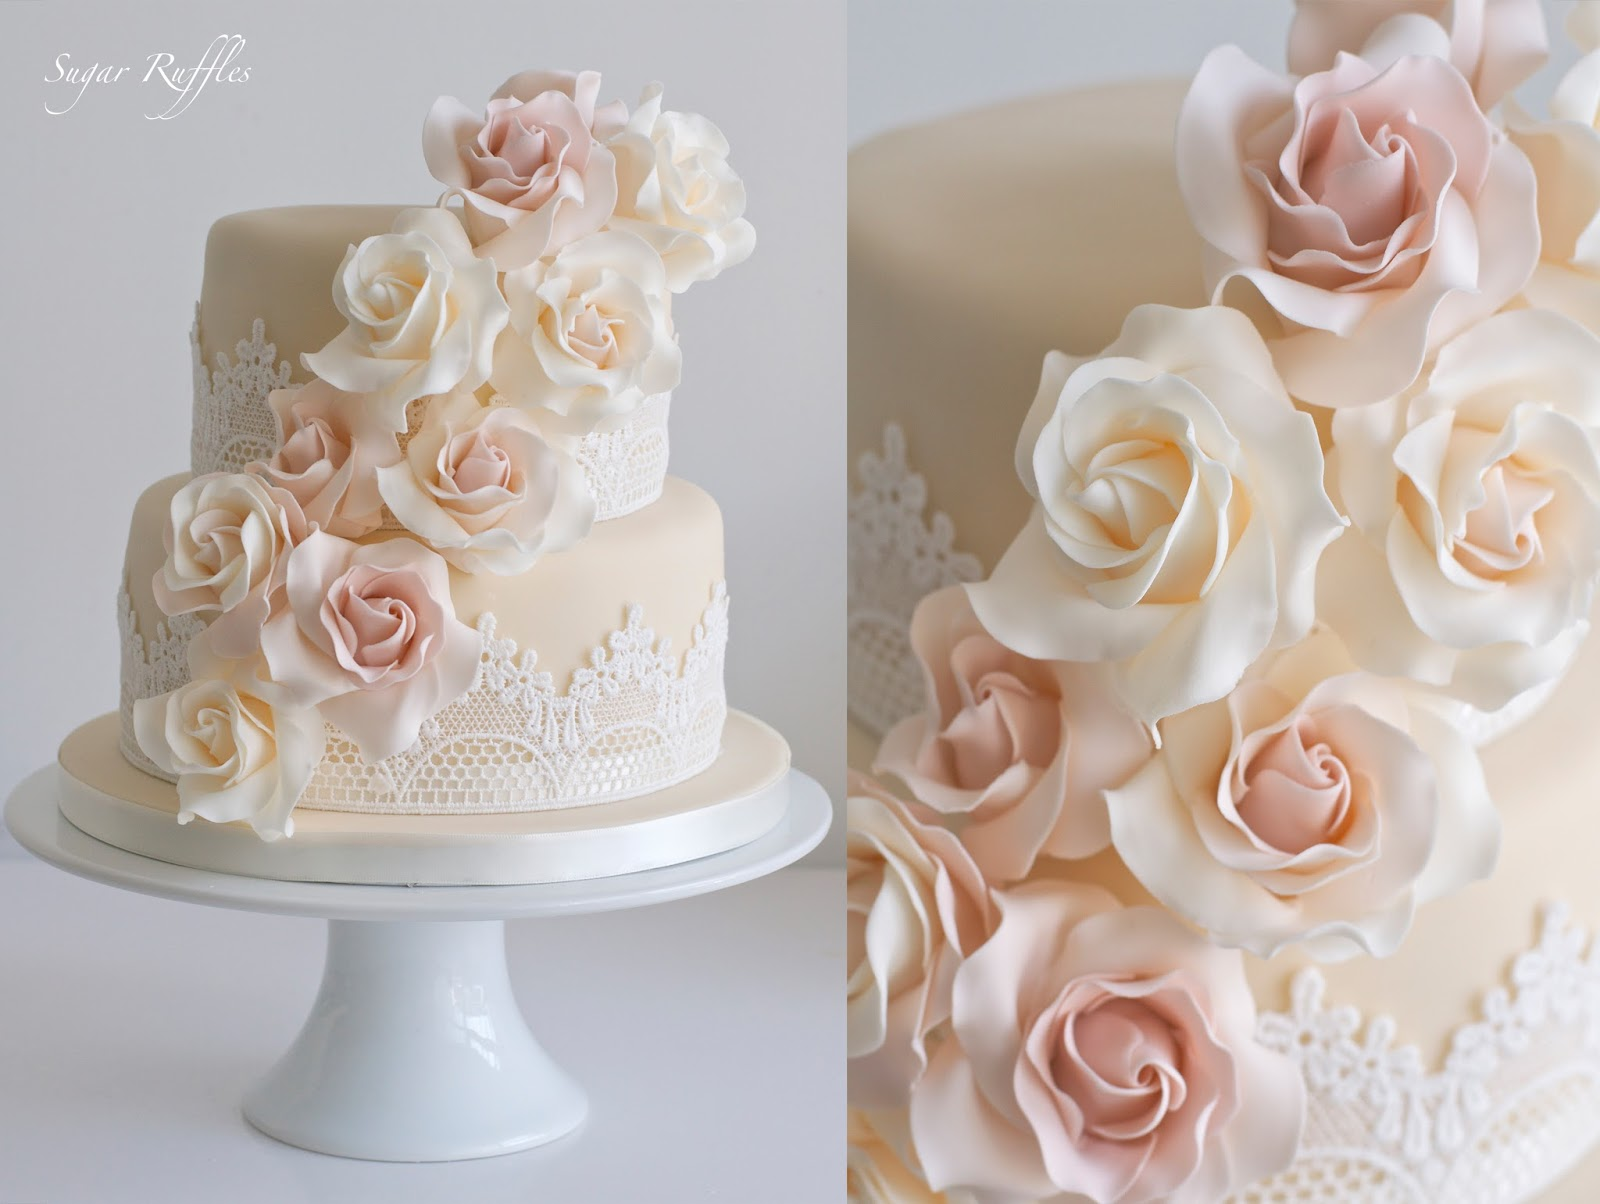 2 tier wedding cakes with red roses sugar ruffles wedding cakes barrow in furness 10176